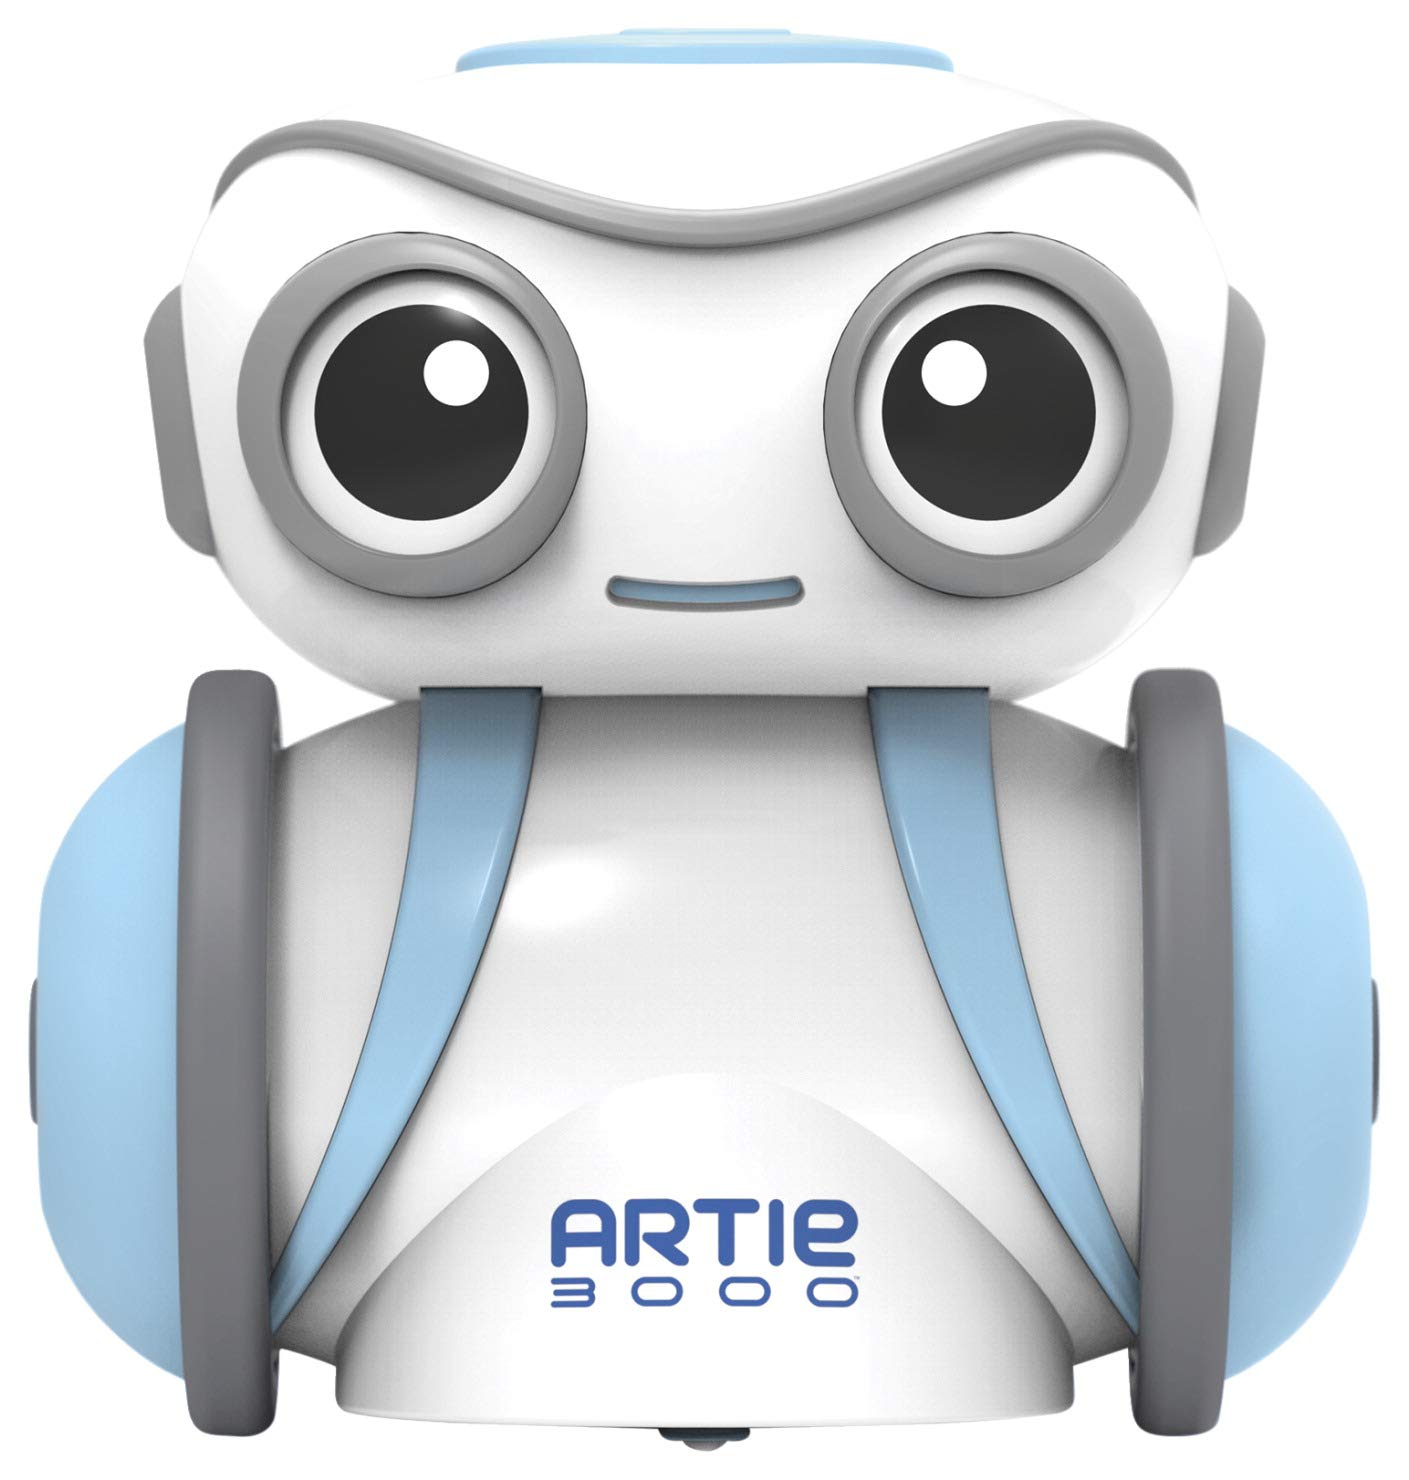 Learning Resources artie 3000. Put children in control and code line by line with artie 3000, the coding/drawing robot. Children will learn left-brain